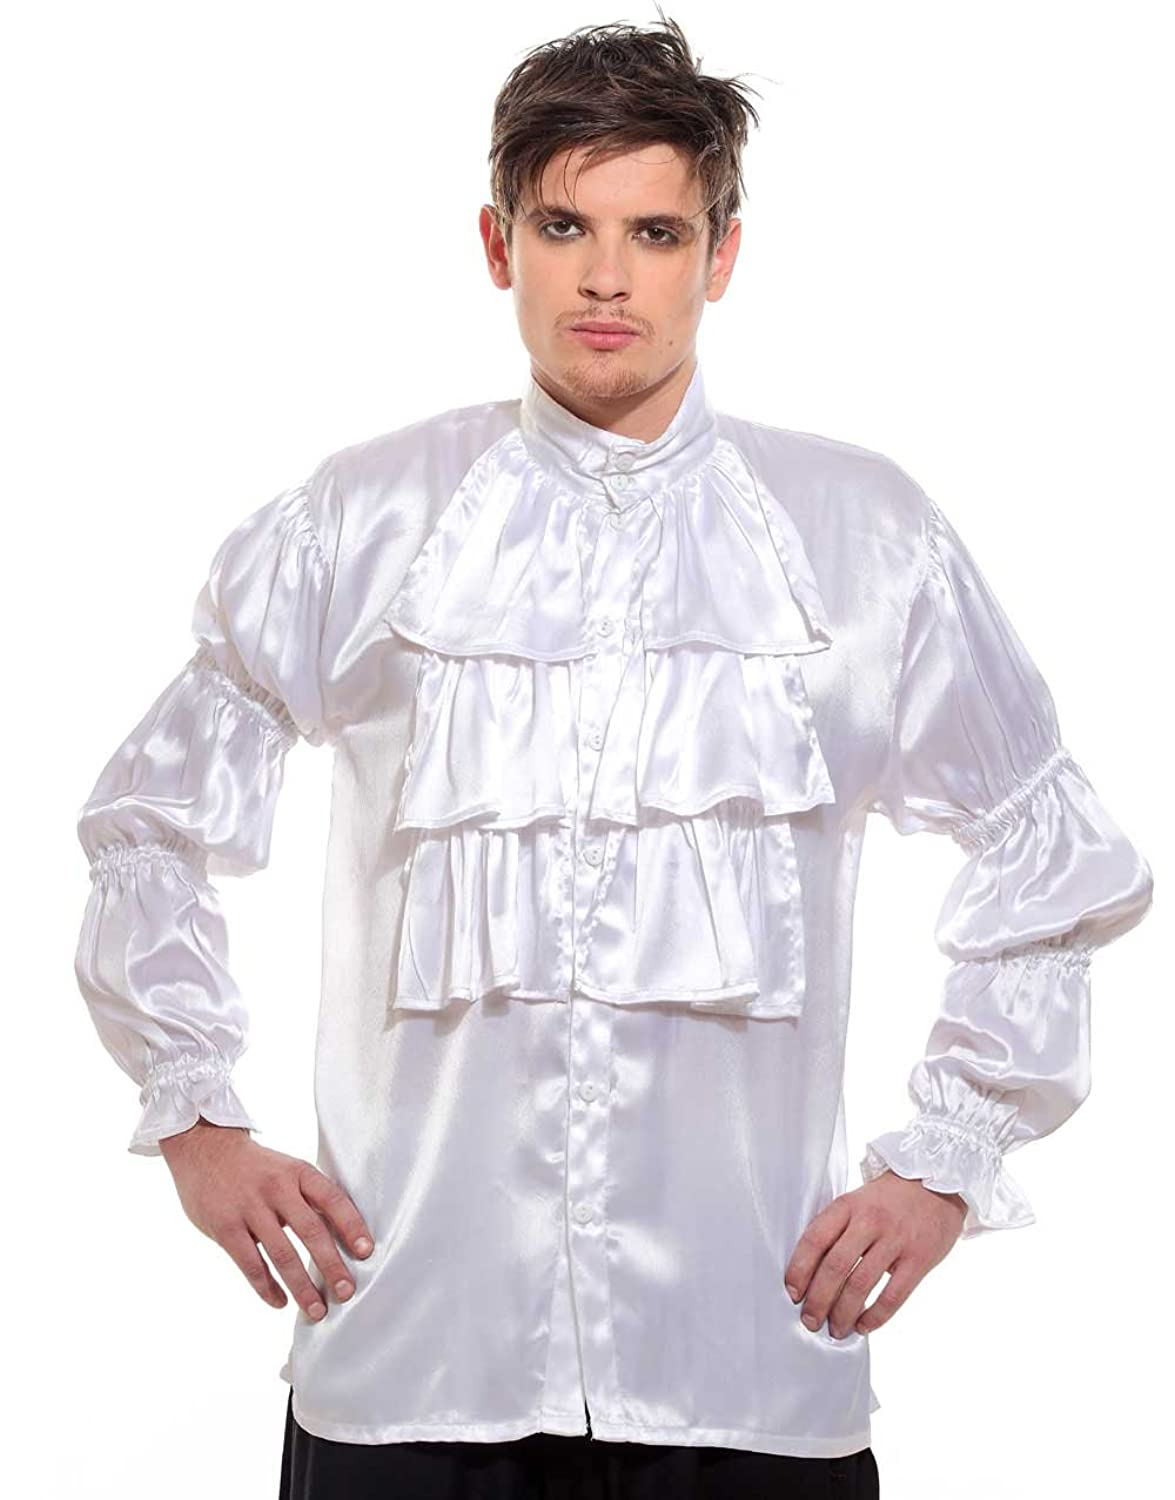 Frilly Ruffled Costume Shirt